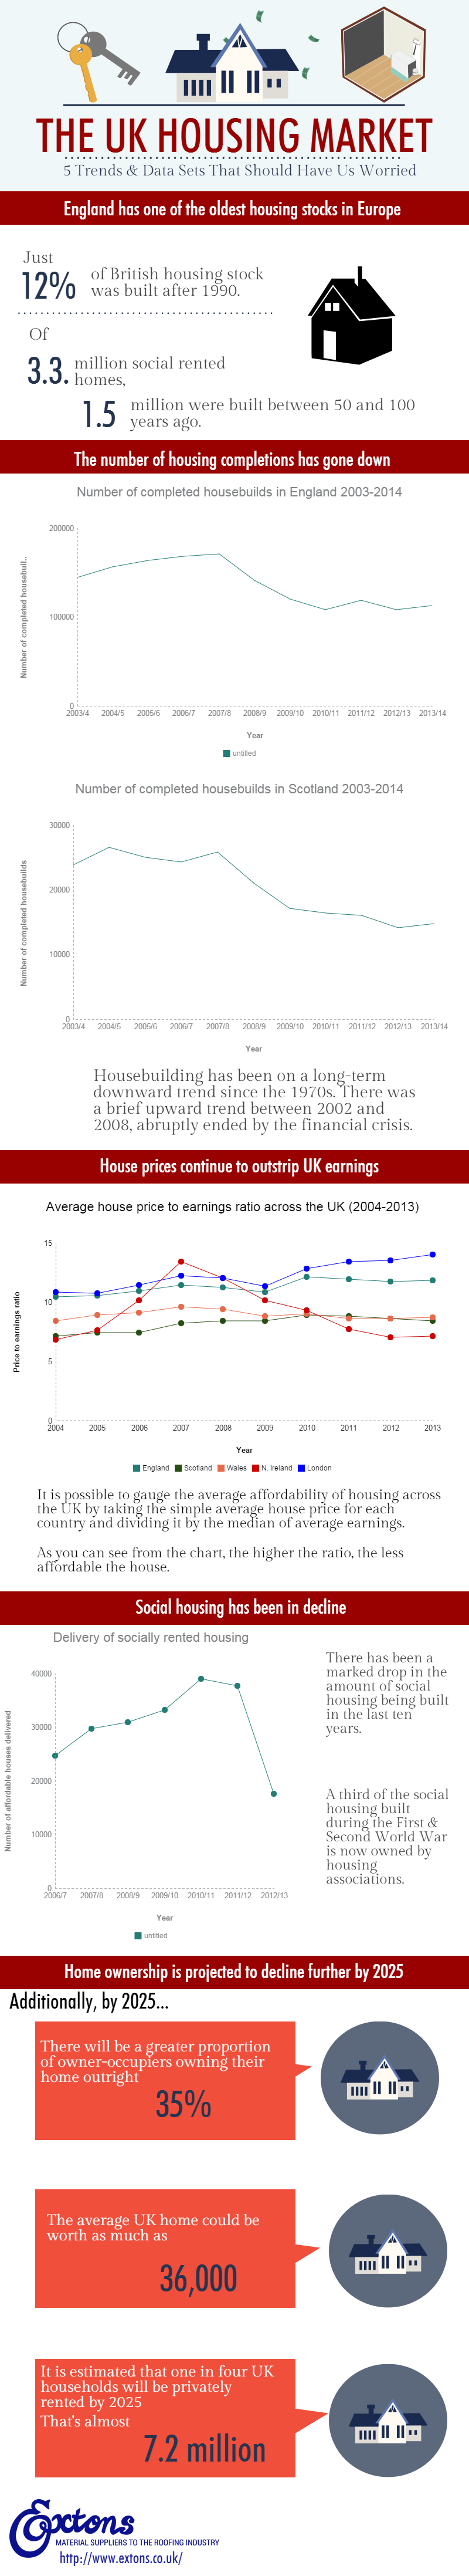 The UK Housing Market: 5 trends & statistics that should have us worried